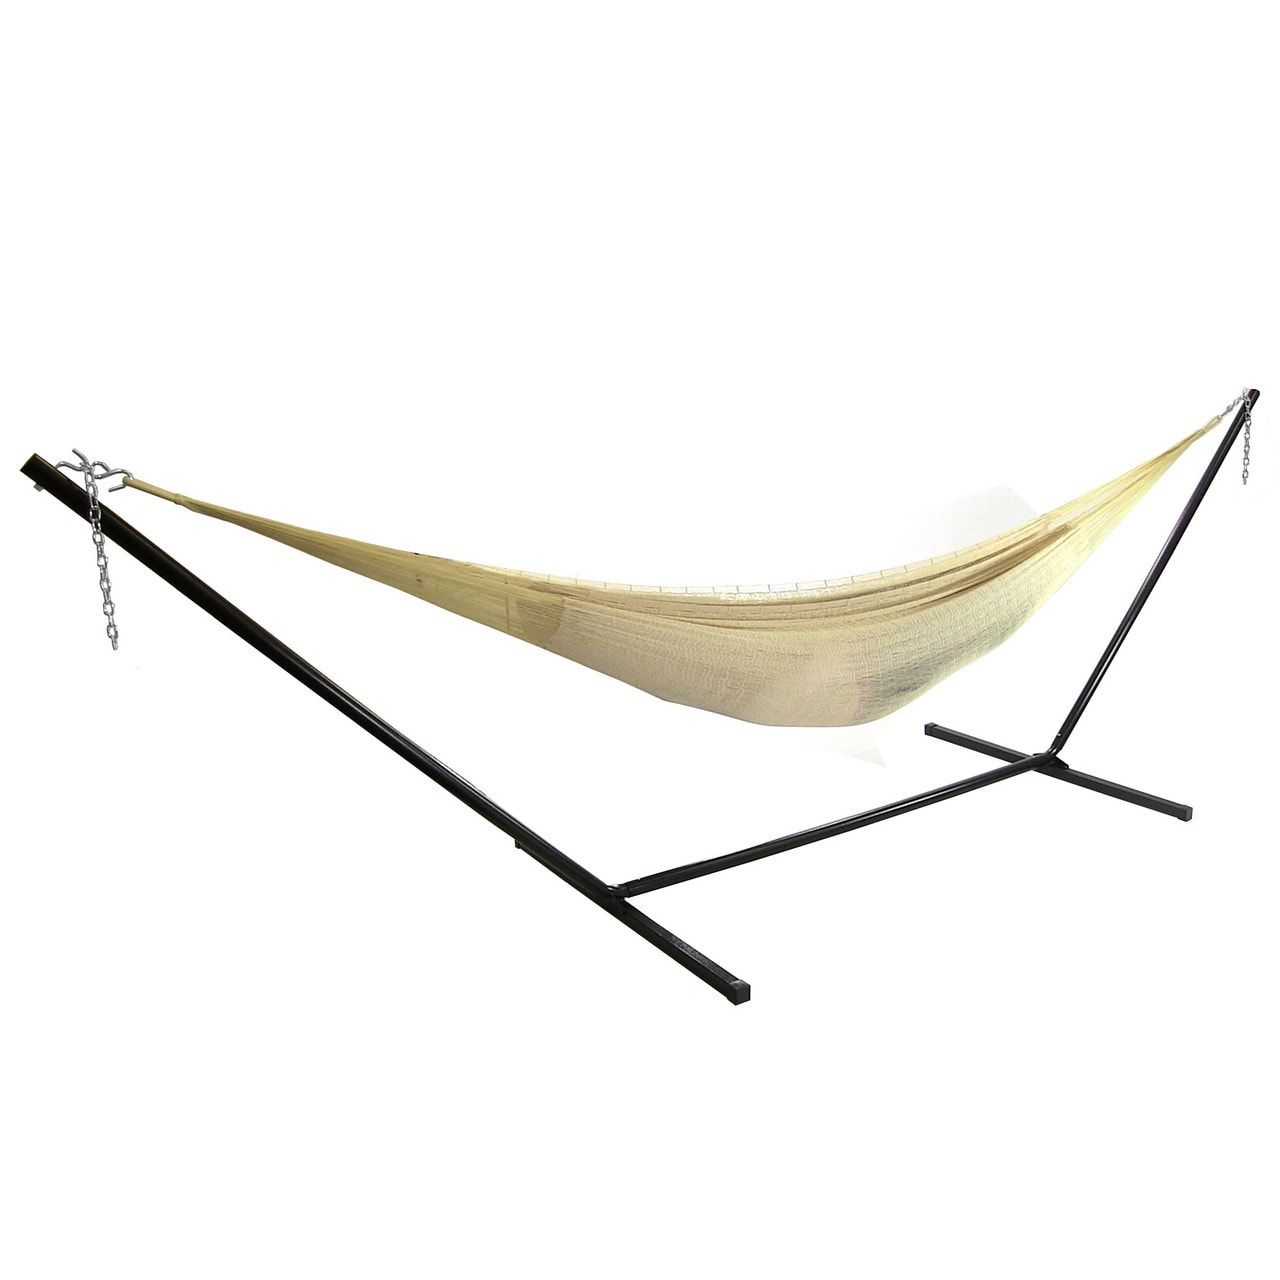 sunnydaze xxl thick cord mayan hammock  hammock only   natural   cotton   sunnydaze decor patio furniture sunnydaze xxl thick cord mayan hammock  hammock only   natural      rh   pinterest